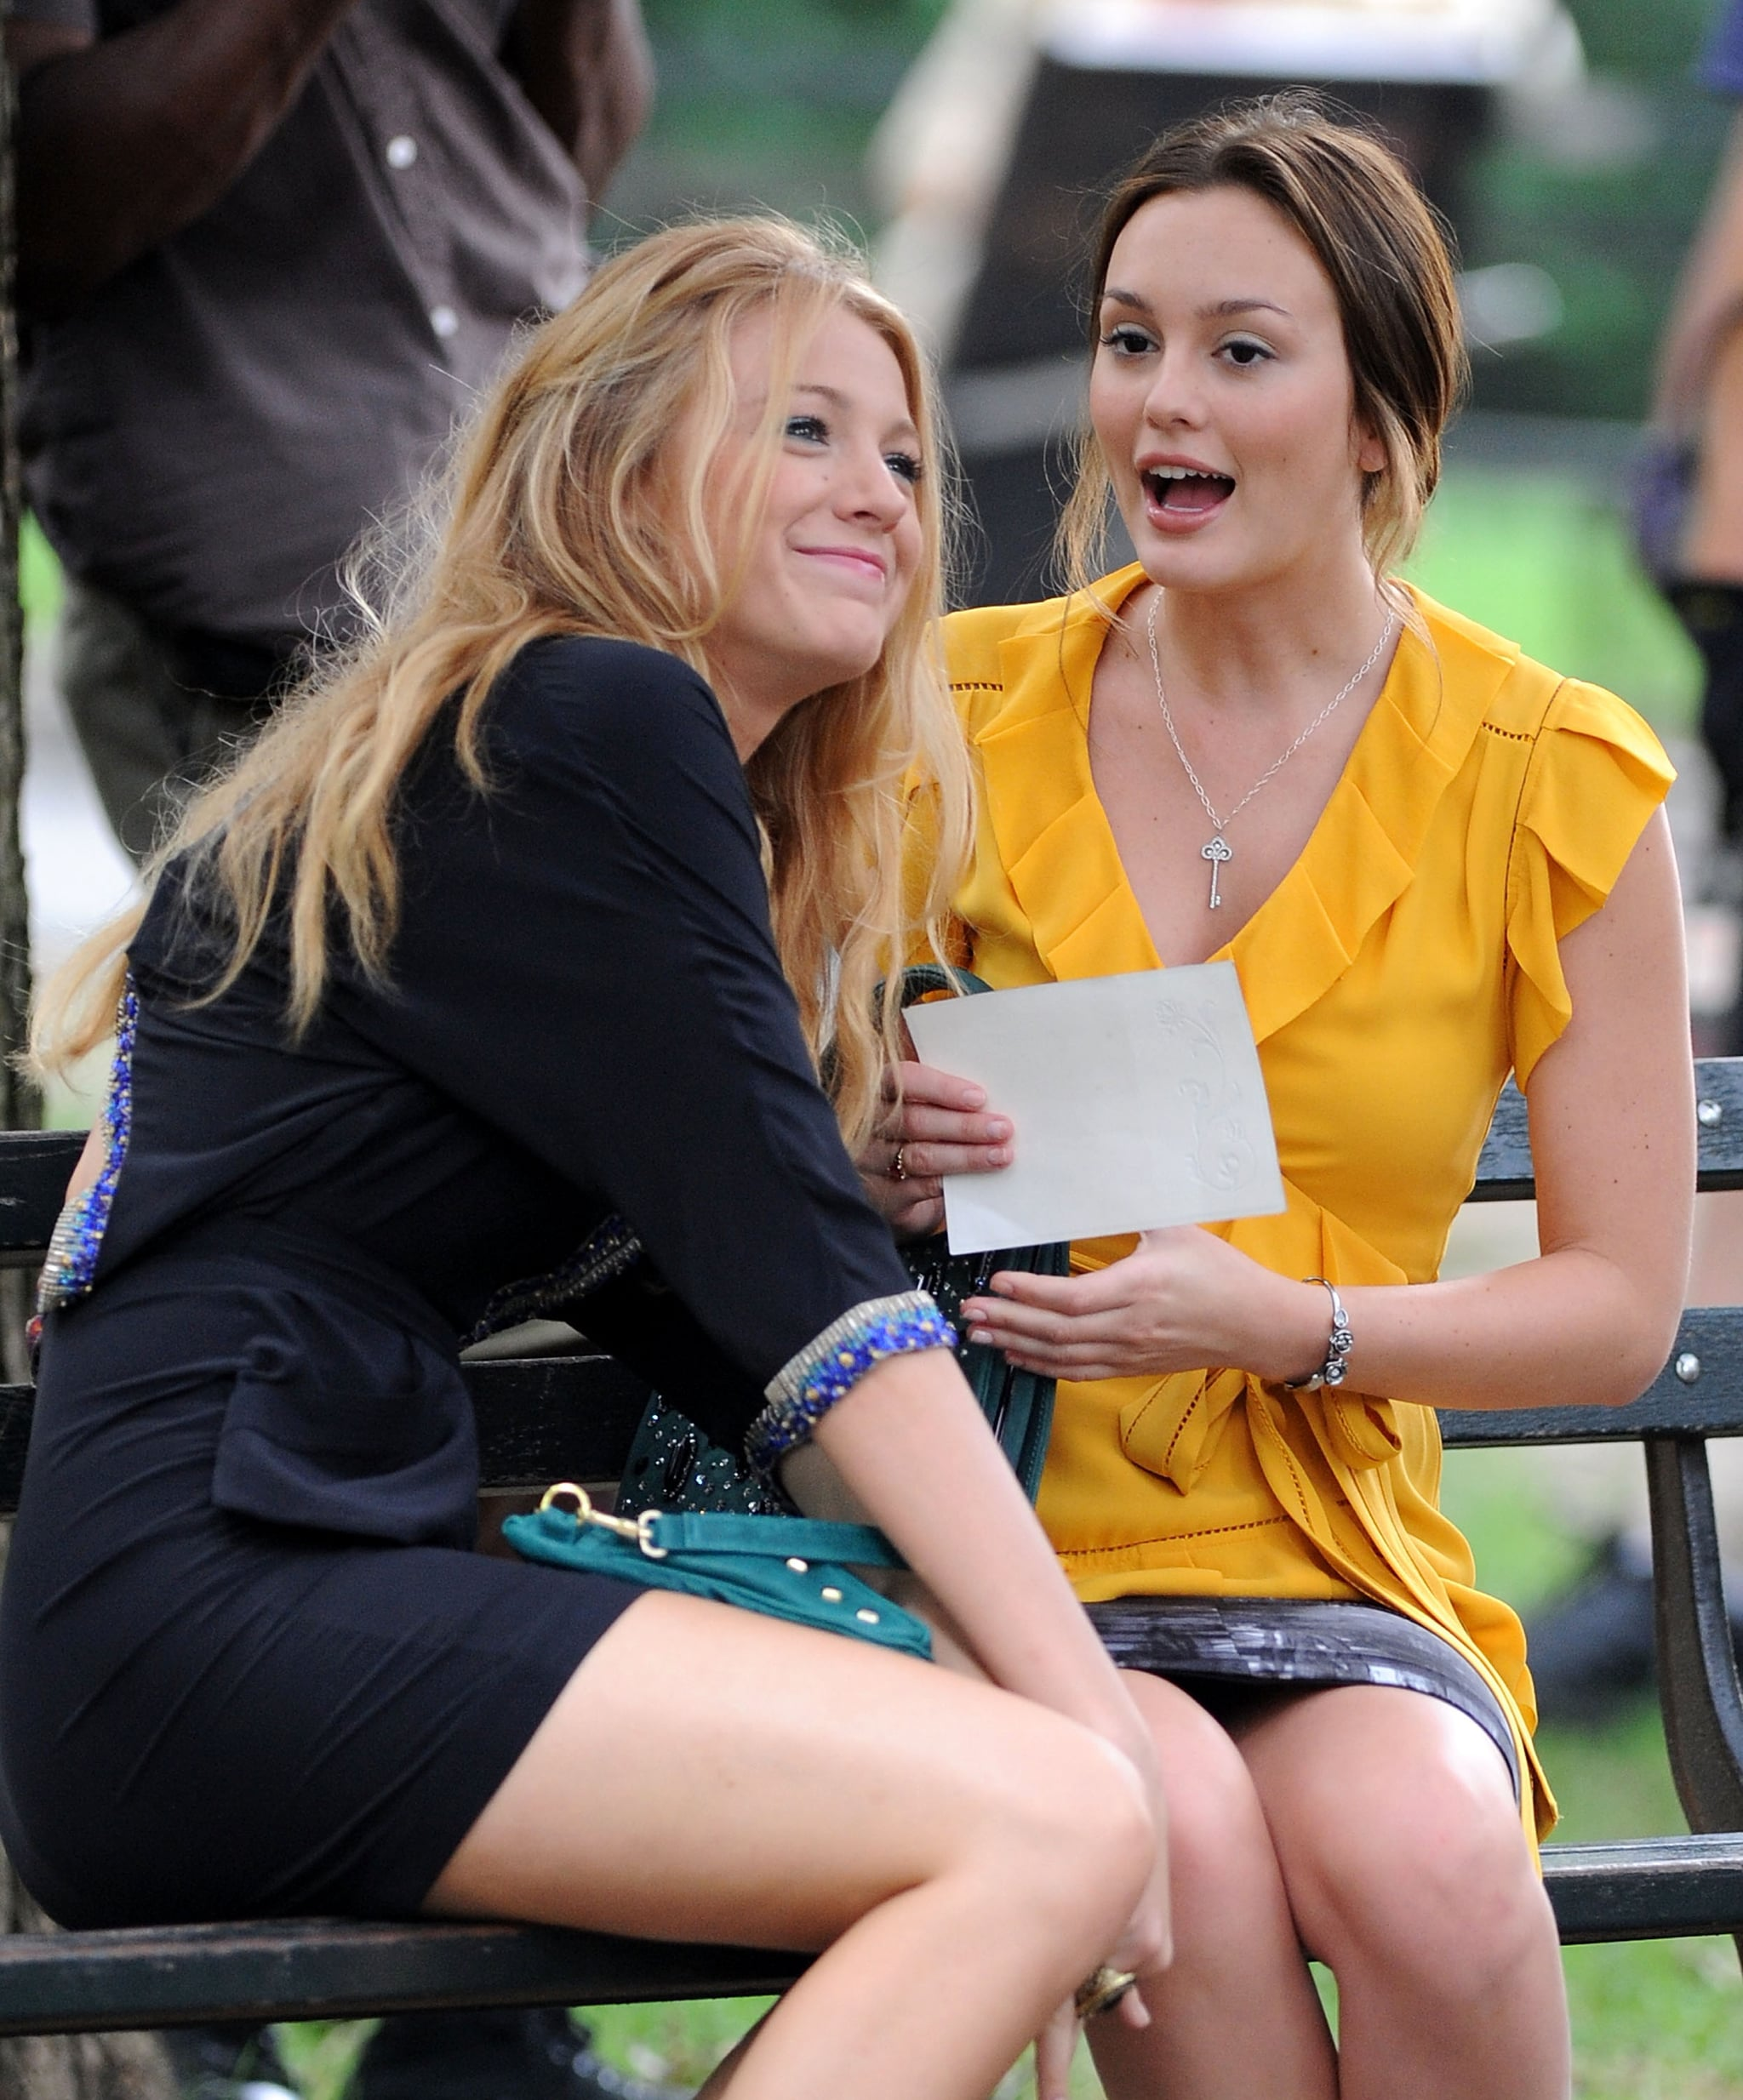 Blake Lively and Leighton Meester ran through lines together in July 2009.